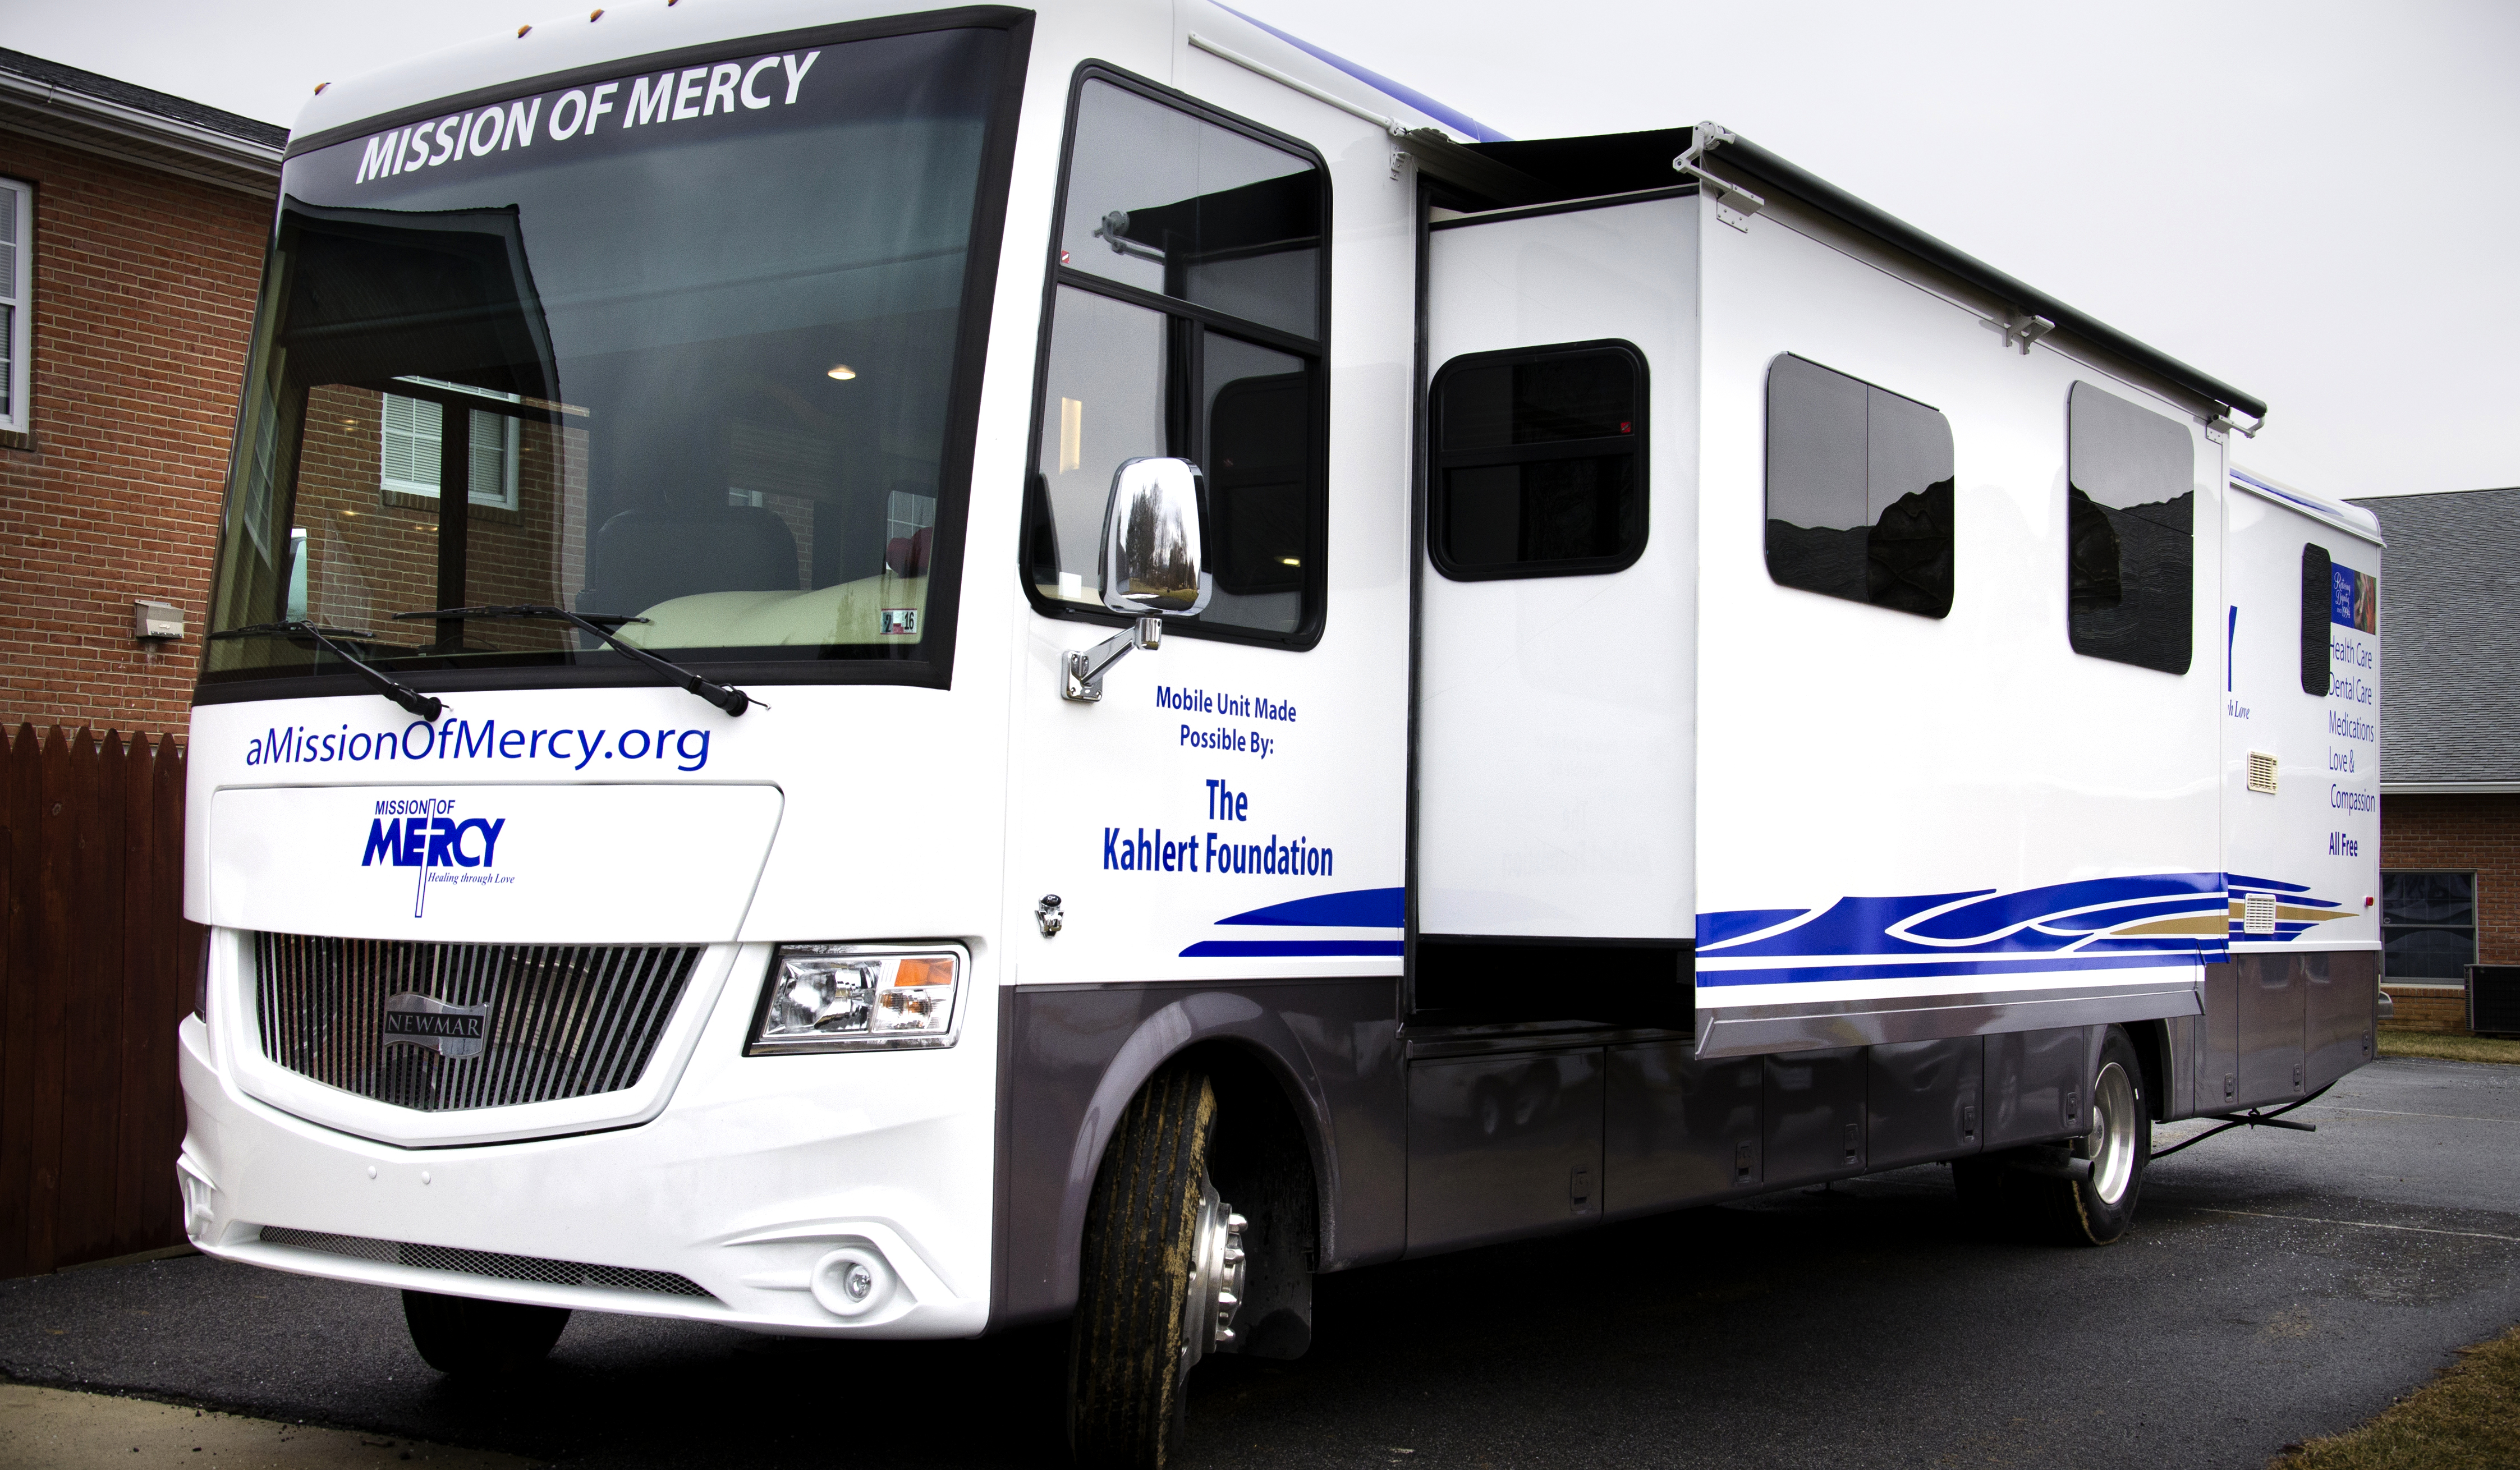 The Mission of Mercy mobile clinic